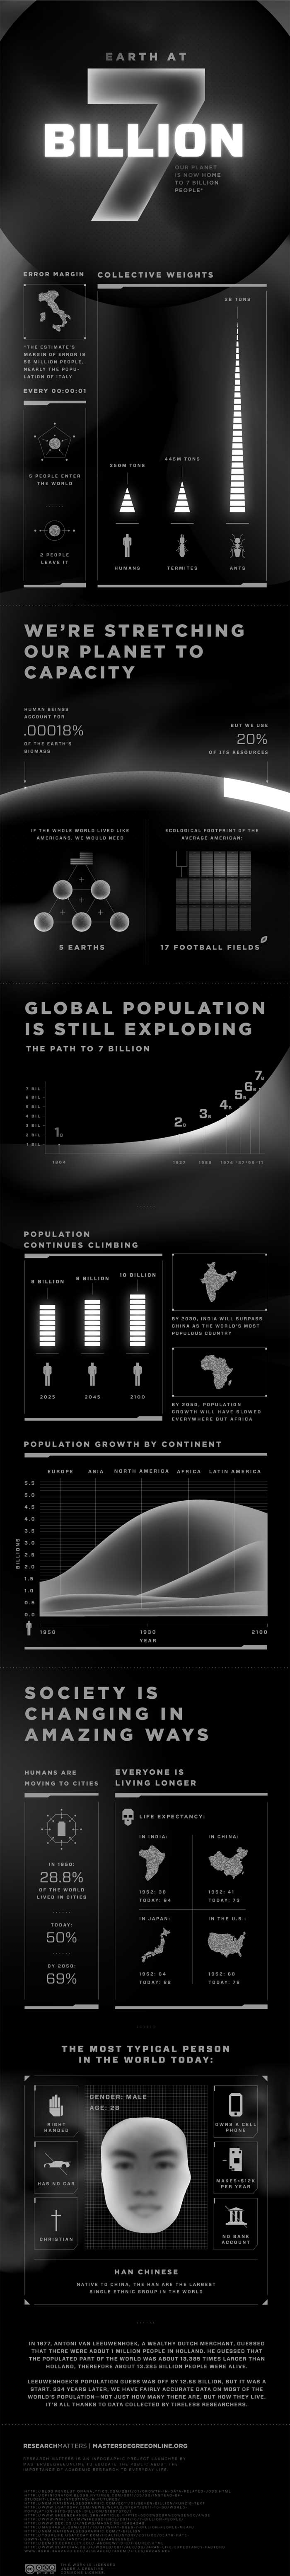 The Earth At 7 Billion People [INFOGRAPHIC]